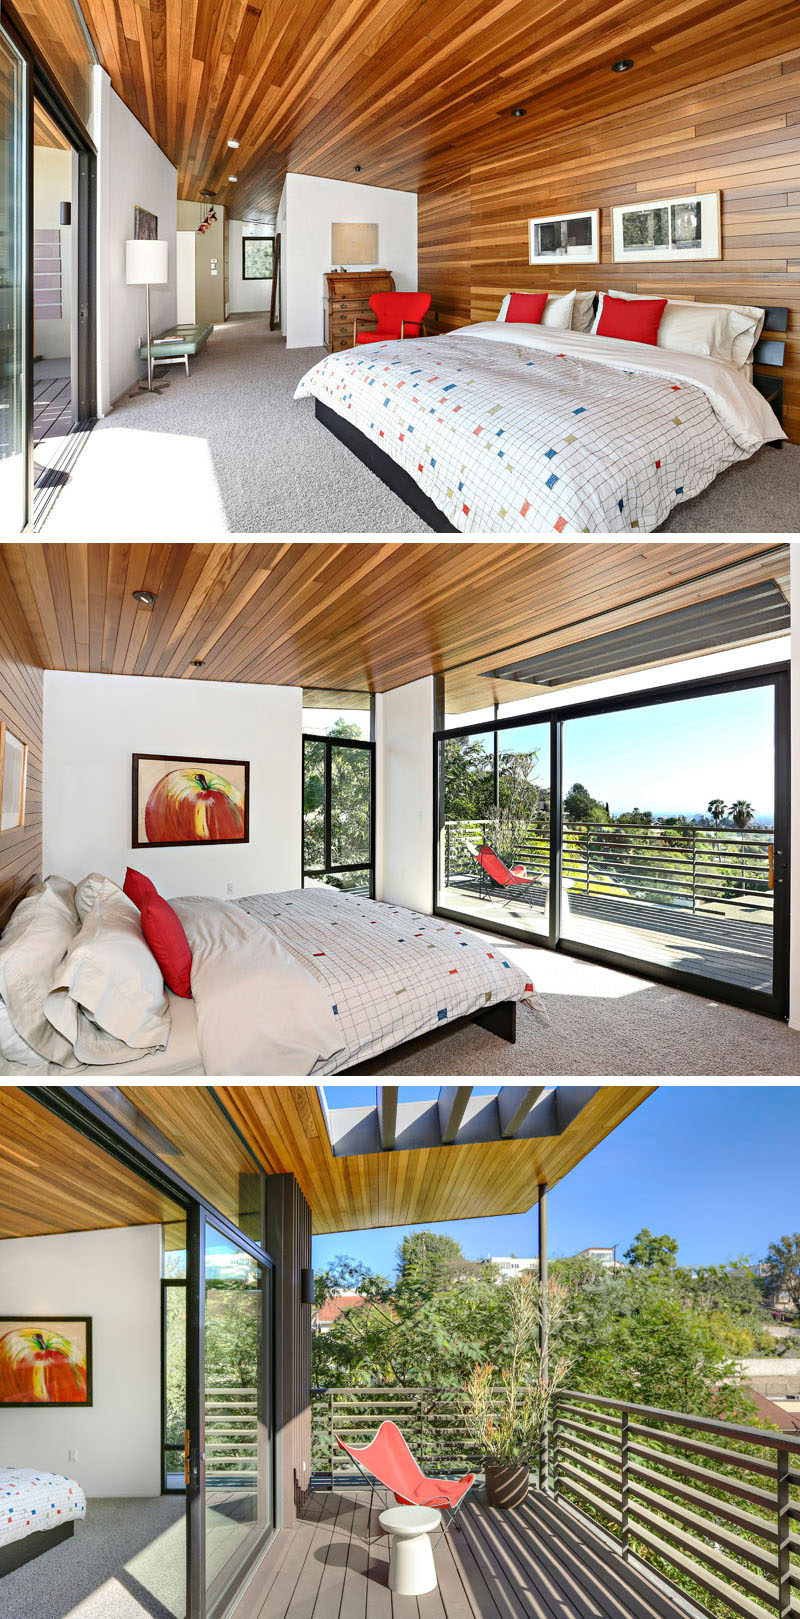 This renovated house has a large, tree-top master suite that features wood that wraps around from the wall and onto the ceiling. The bedroom opens up to its own private deck with ocean views. #MasterSuite #BedroomDesign #WoodCeiling